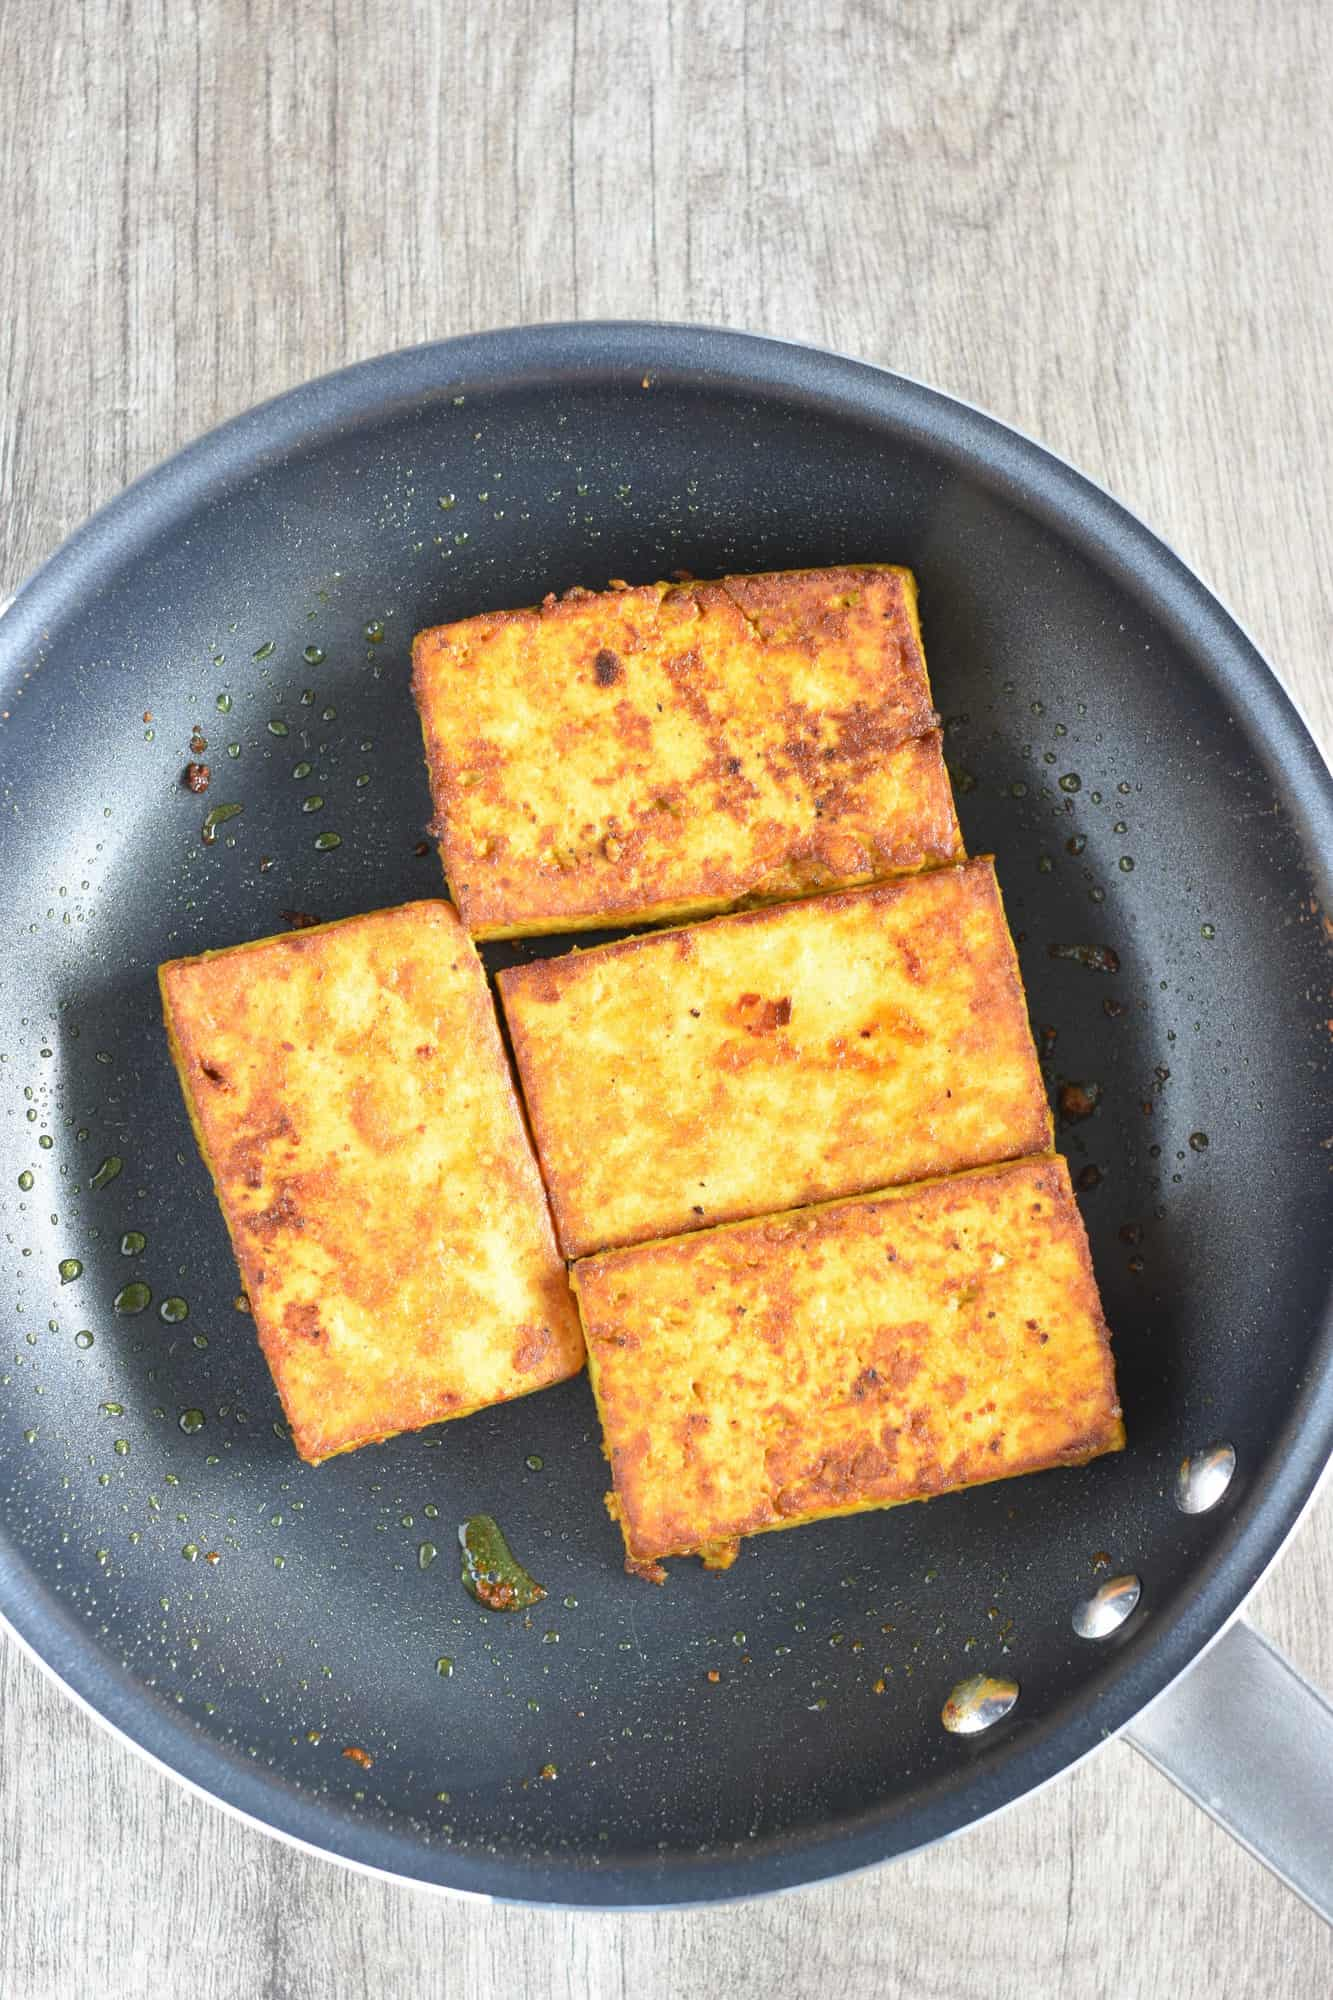 cooked tofu in a nonstick pan